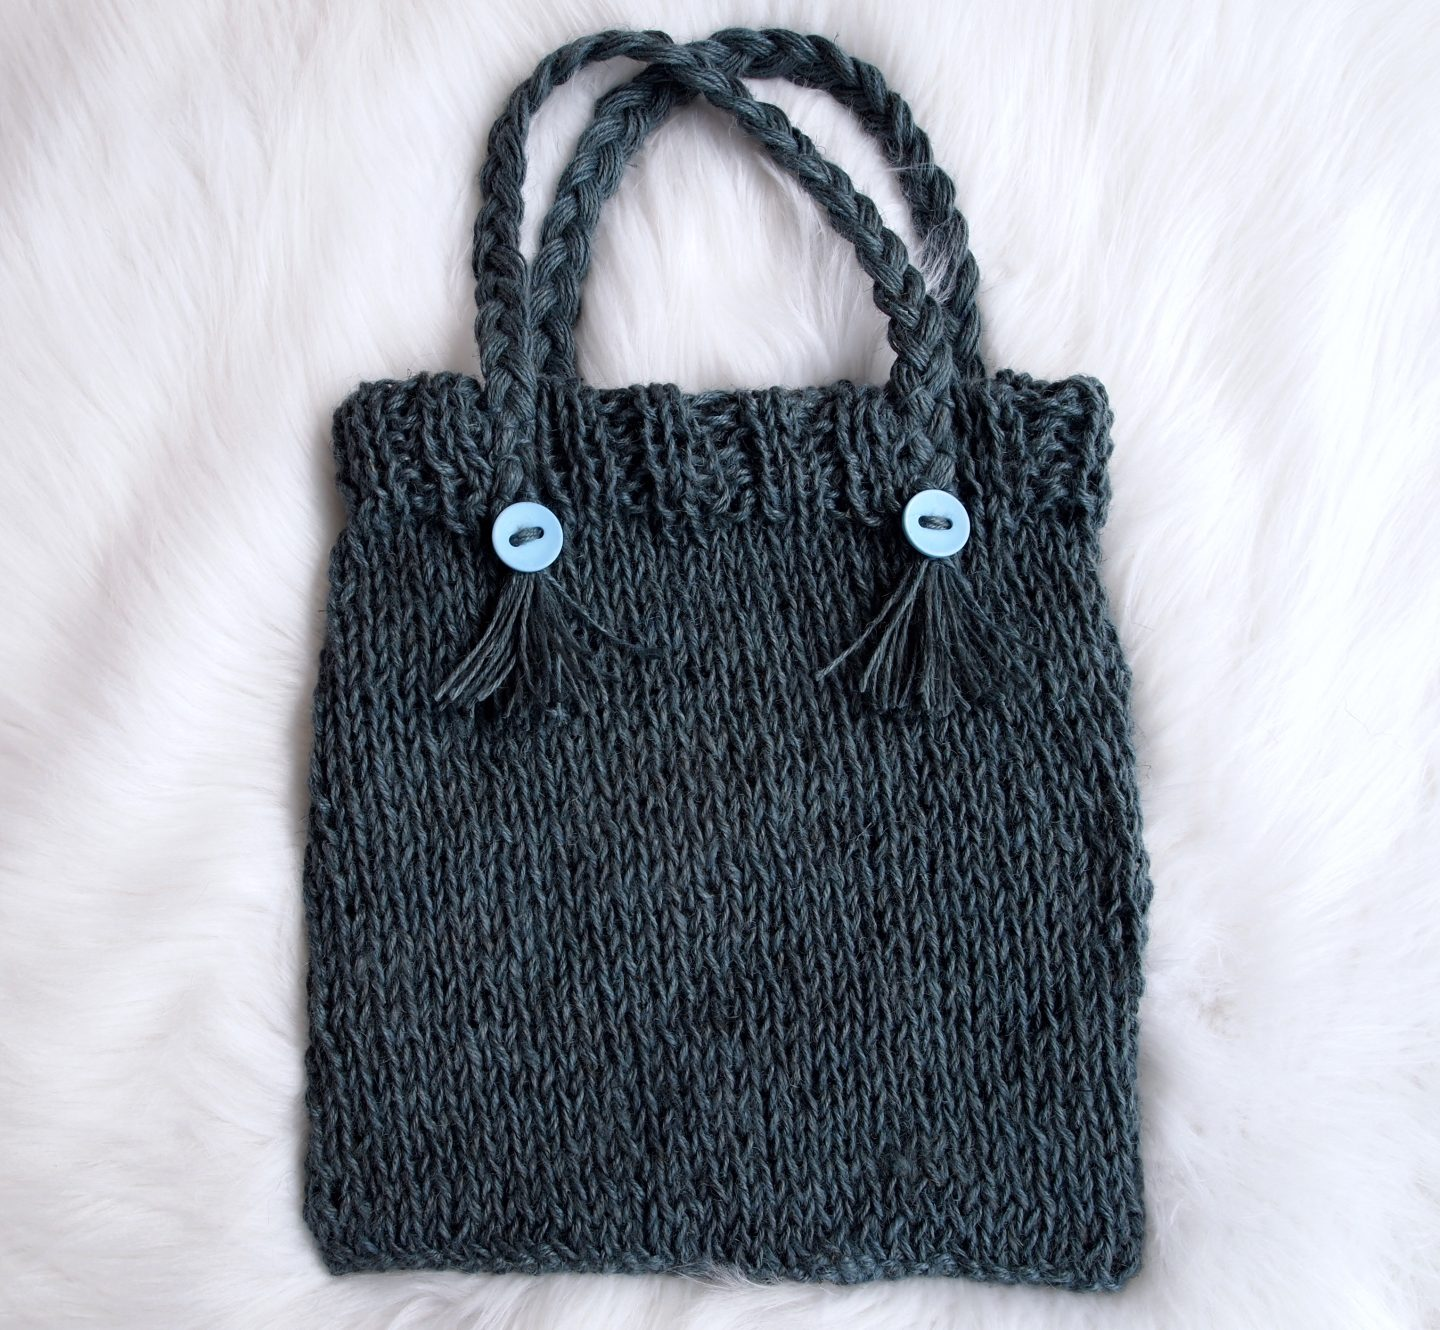 finished knitted tote bag